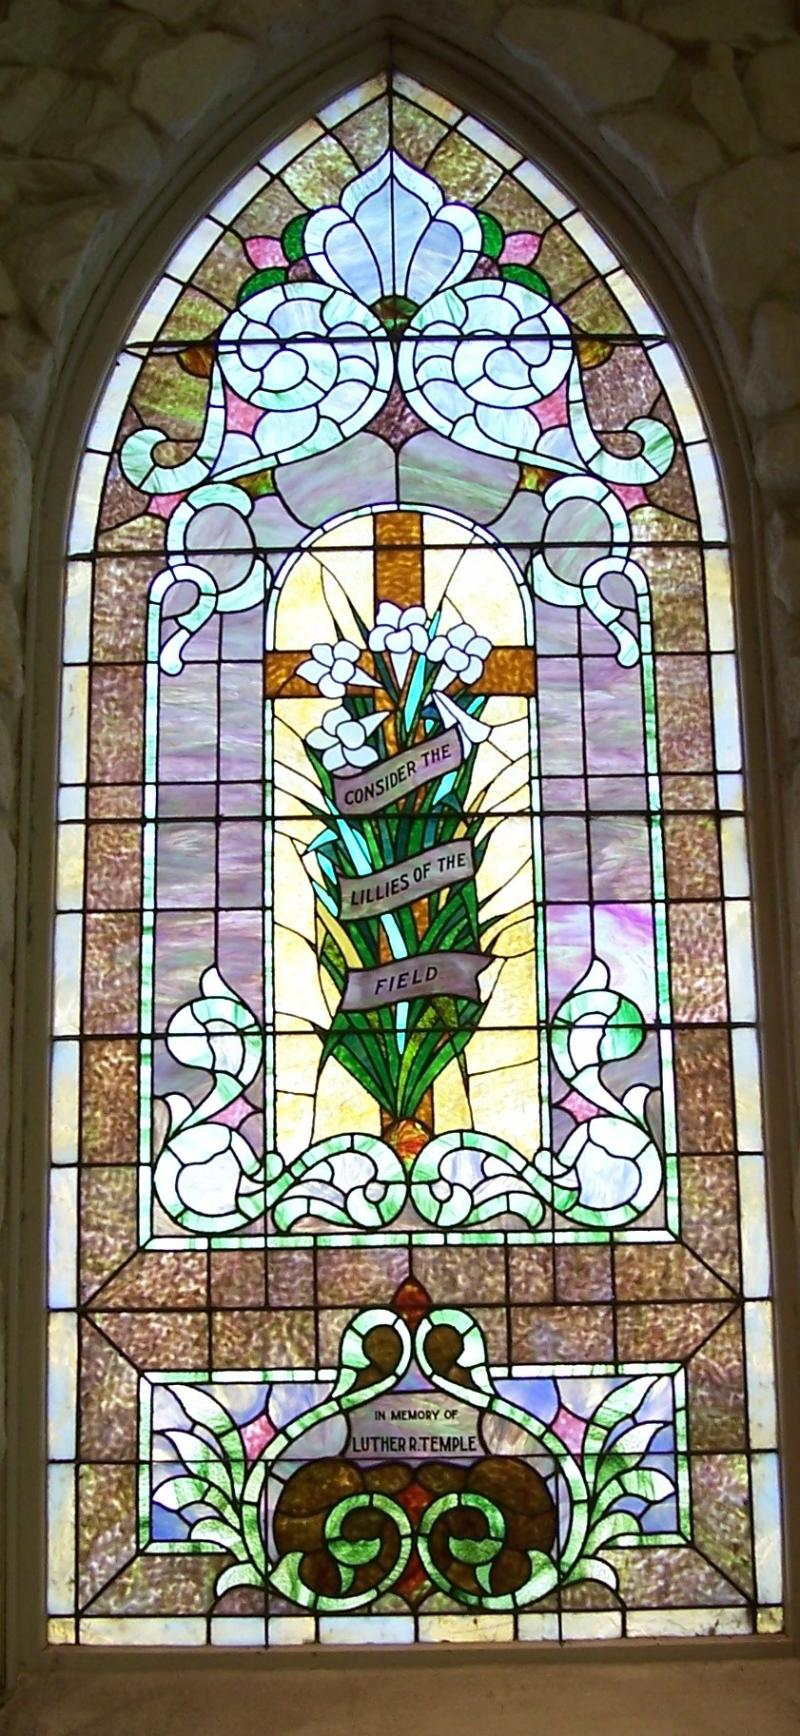 """Consider the Lillies of the Field"" is the theme of our stained glass window."